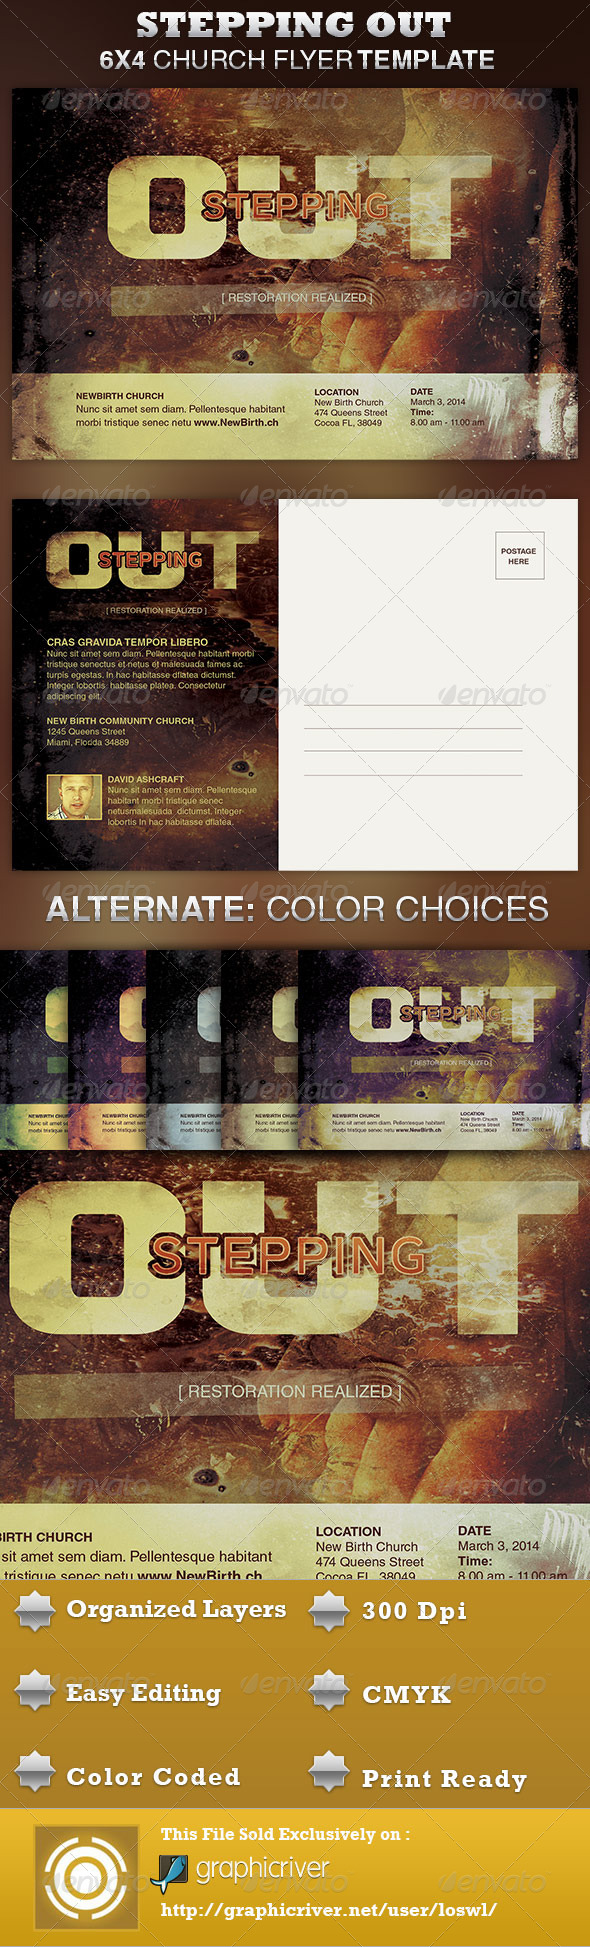 Stepping Out Church Flyer Template - Invitations Cards & Invites